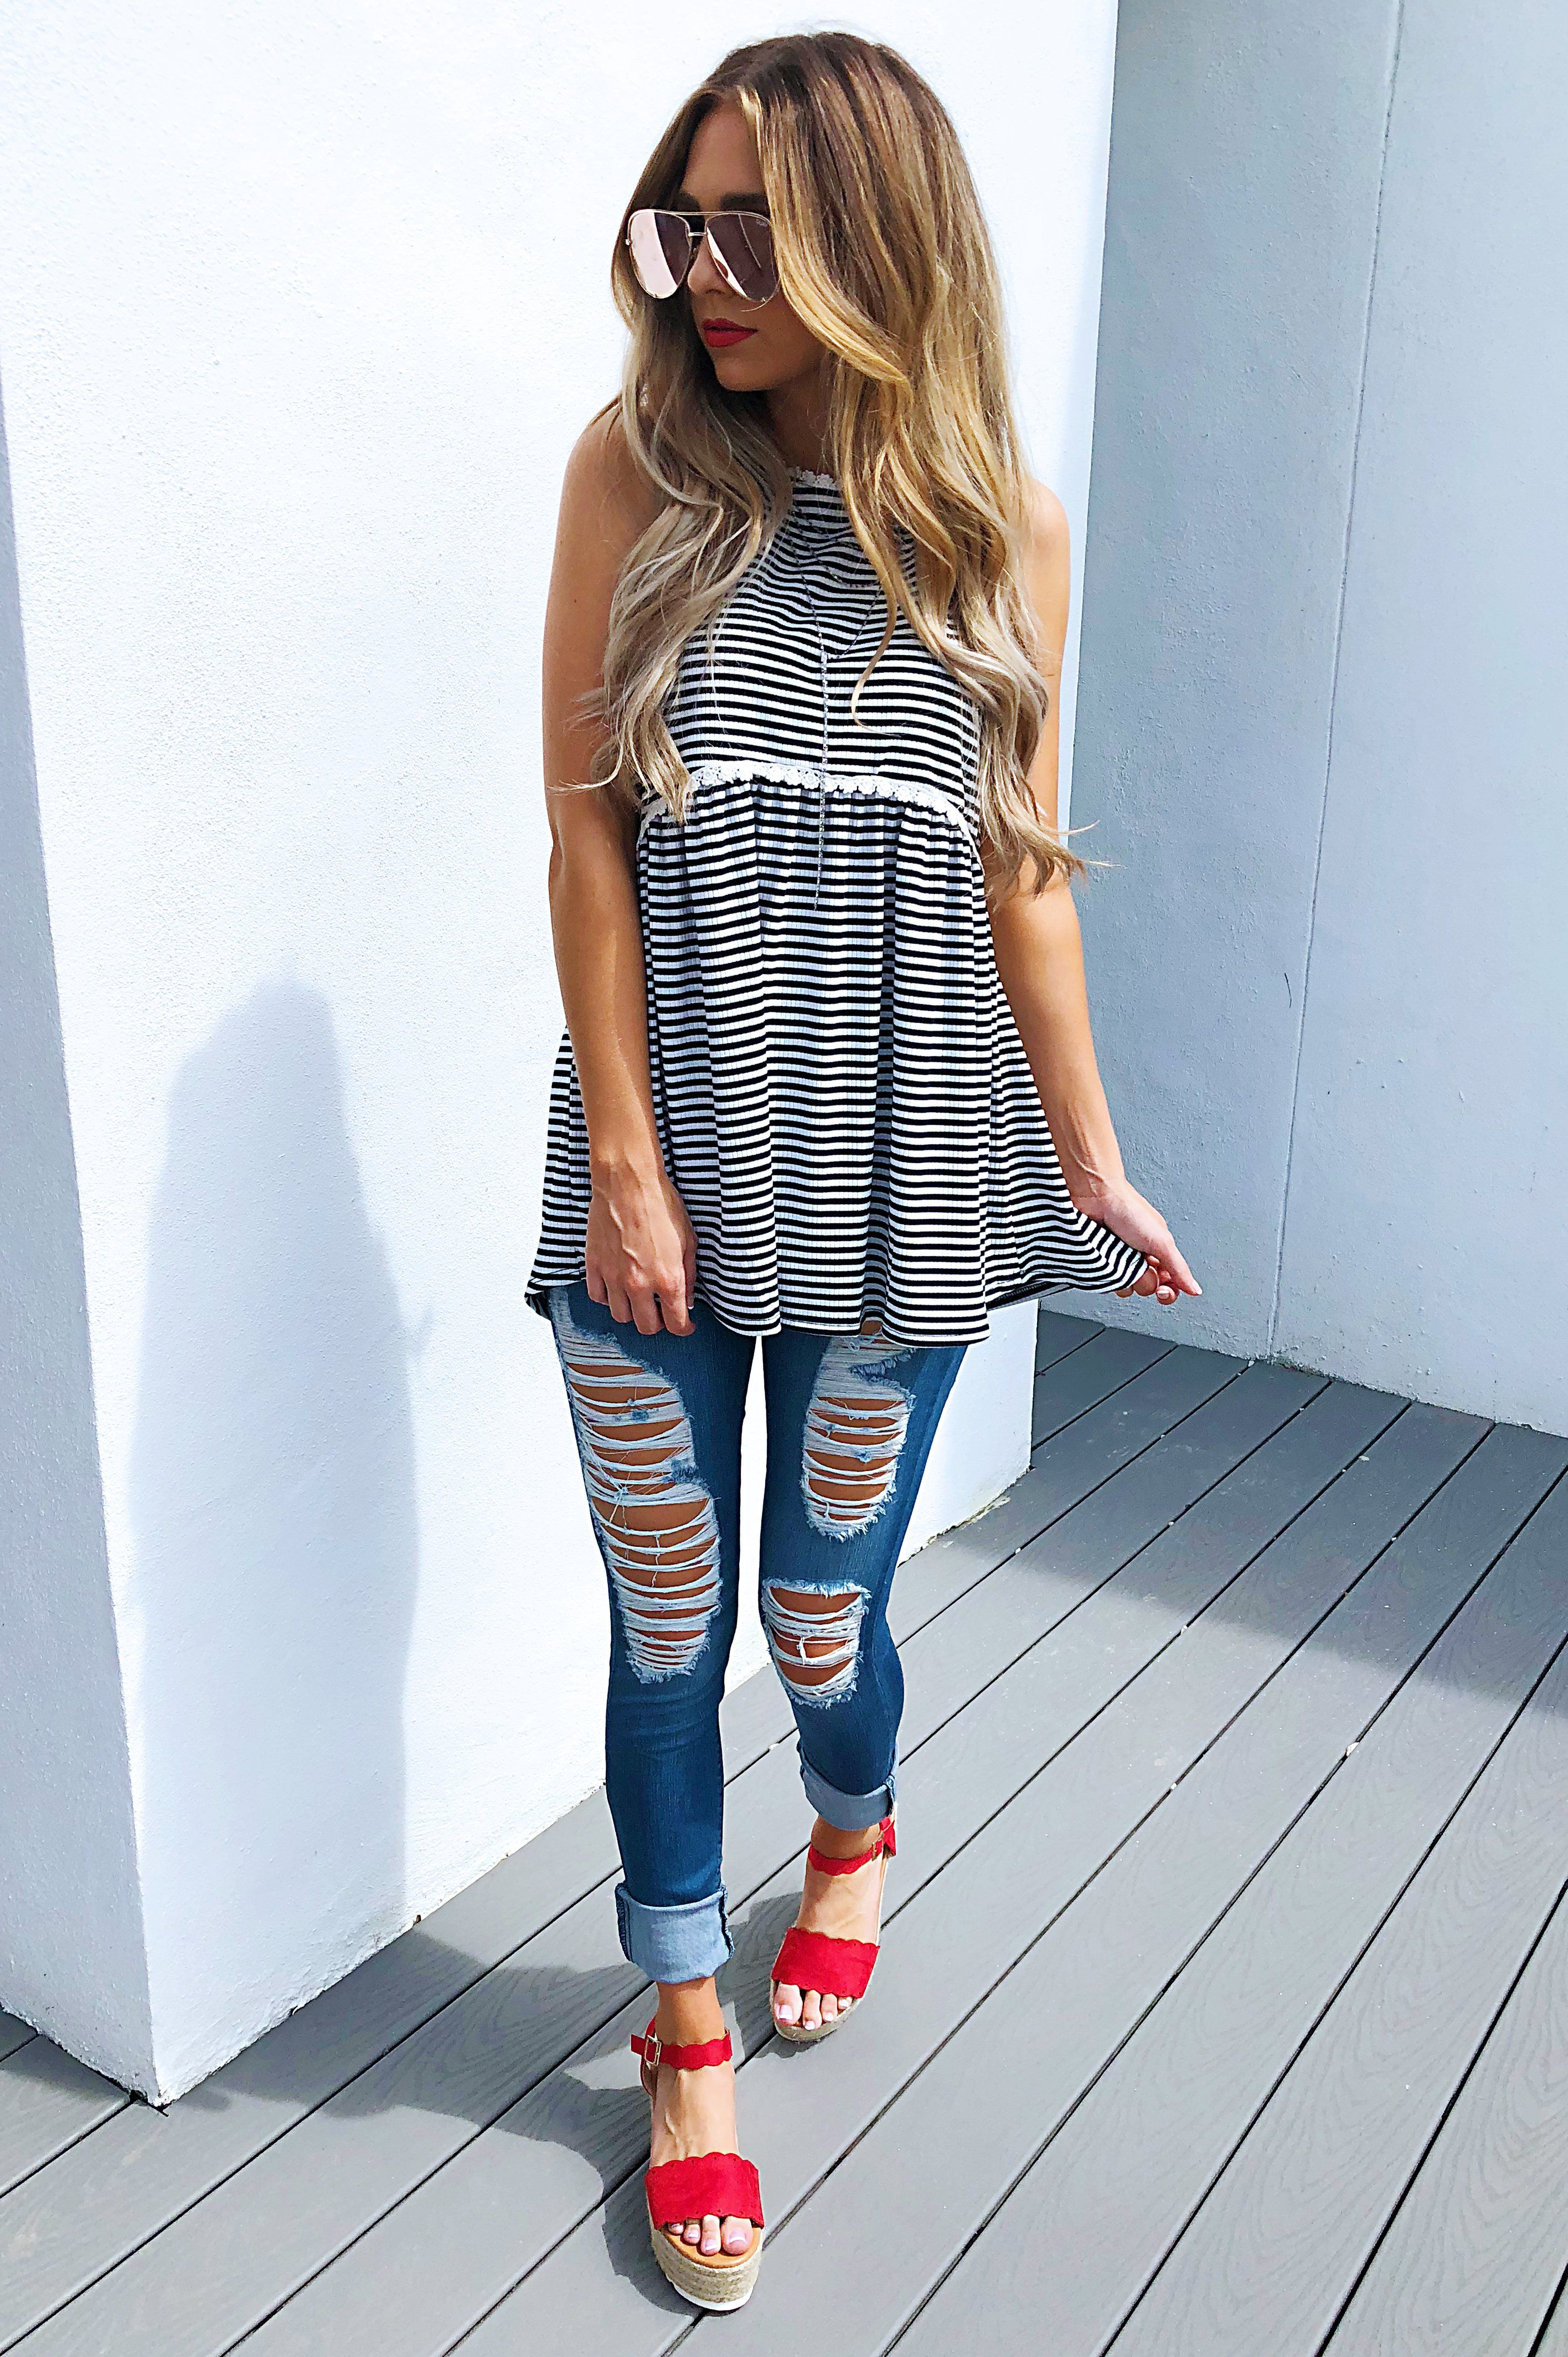 With distressed jeans and red platform sandals